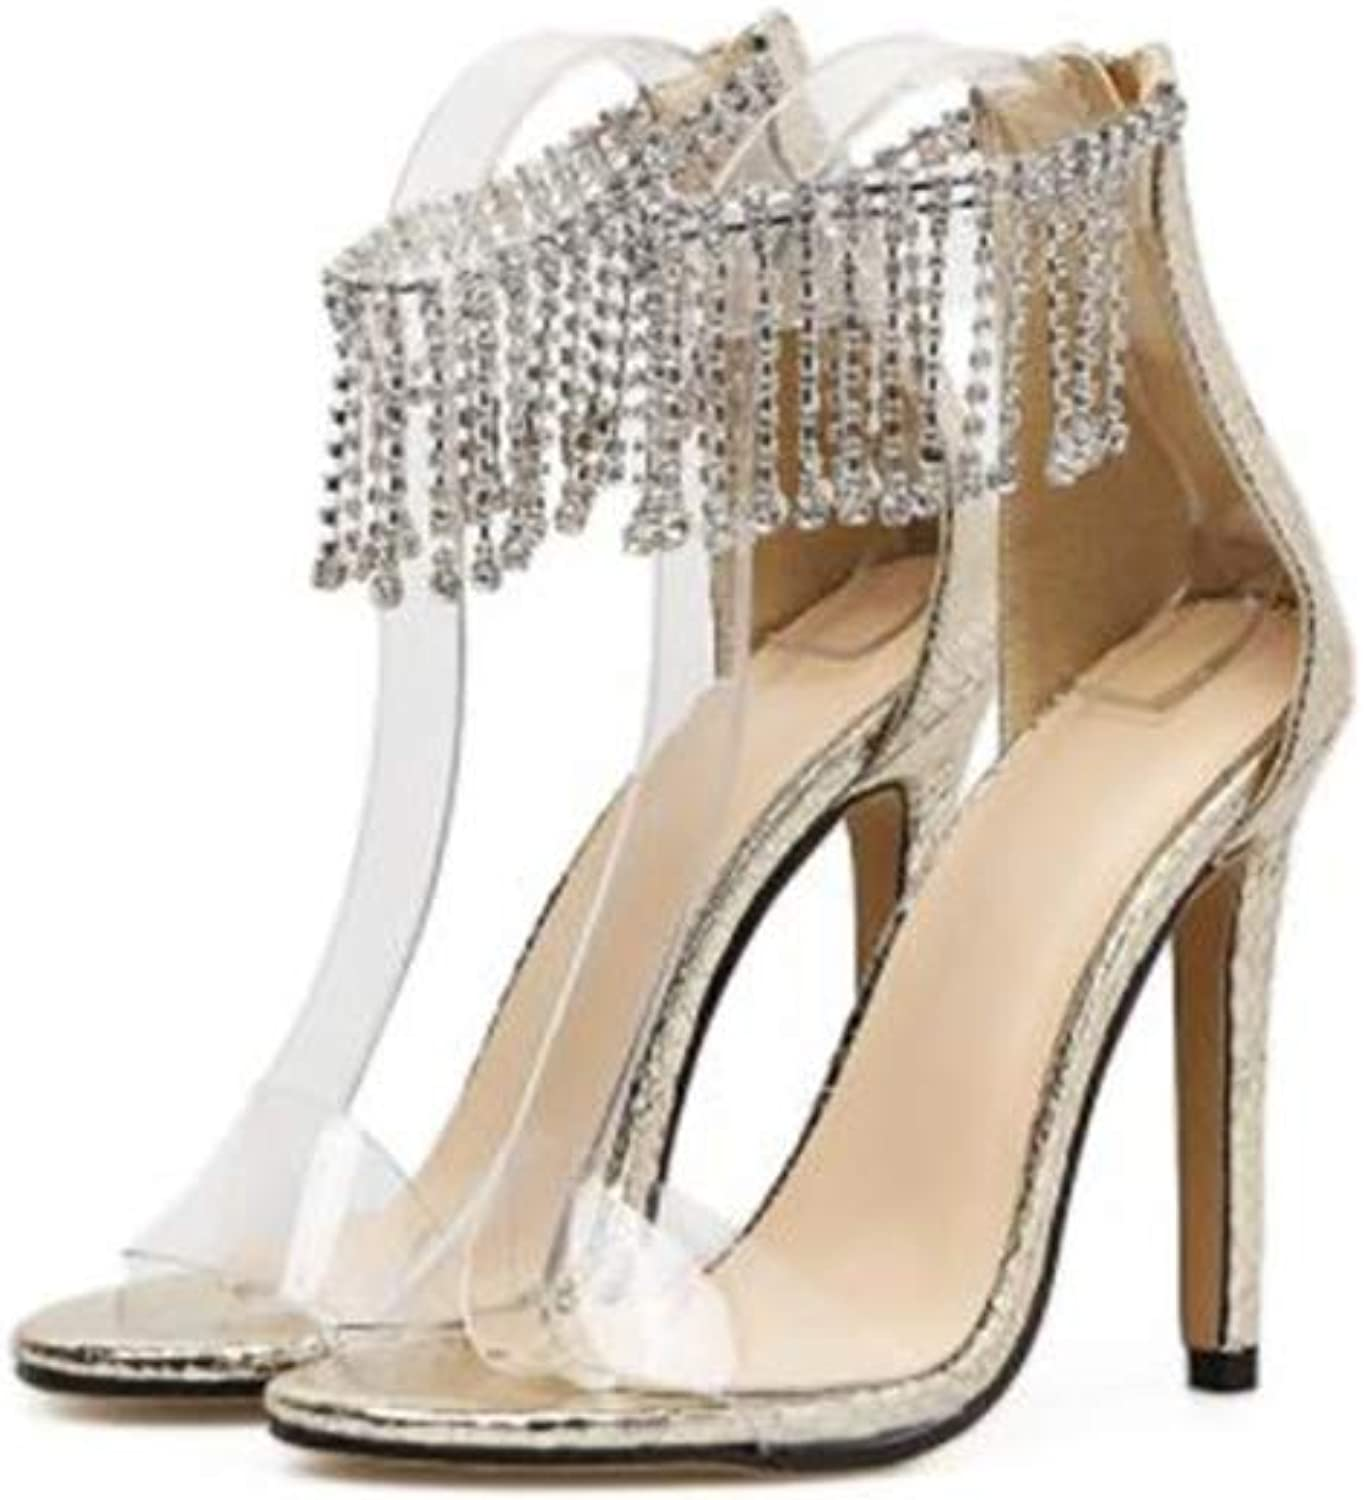 FLourishing Women's Clear Pointed Peep Toe Rhinestone Tassel Stiletto High Heeled sandanl with Back Zip up